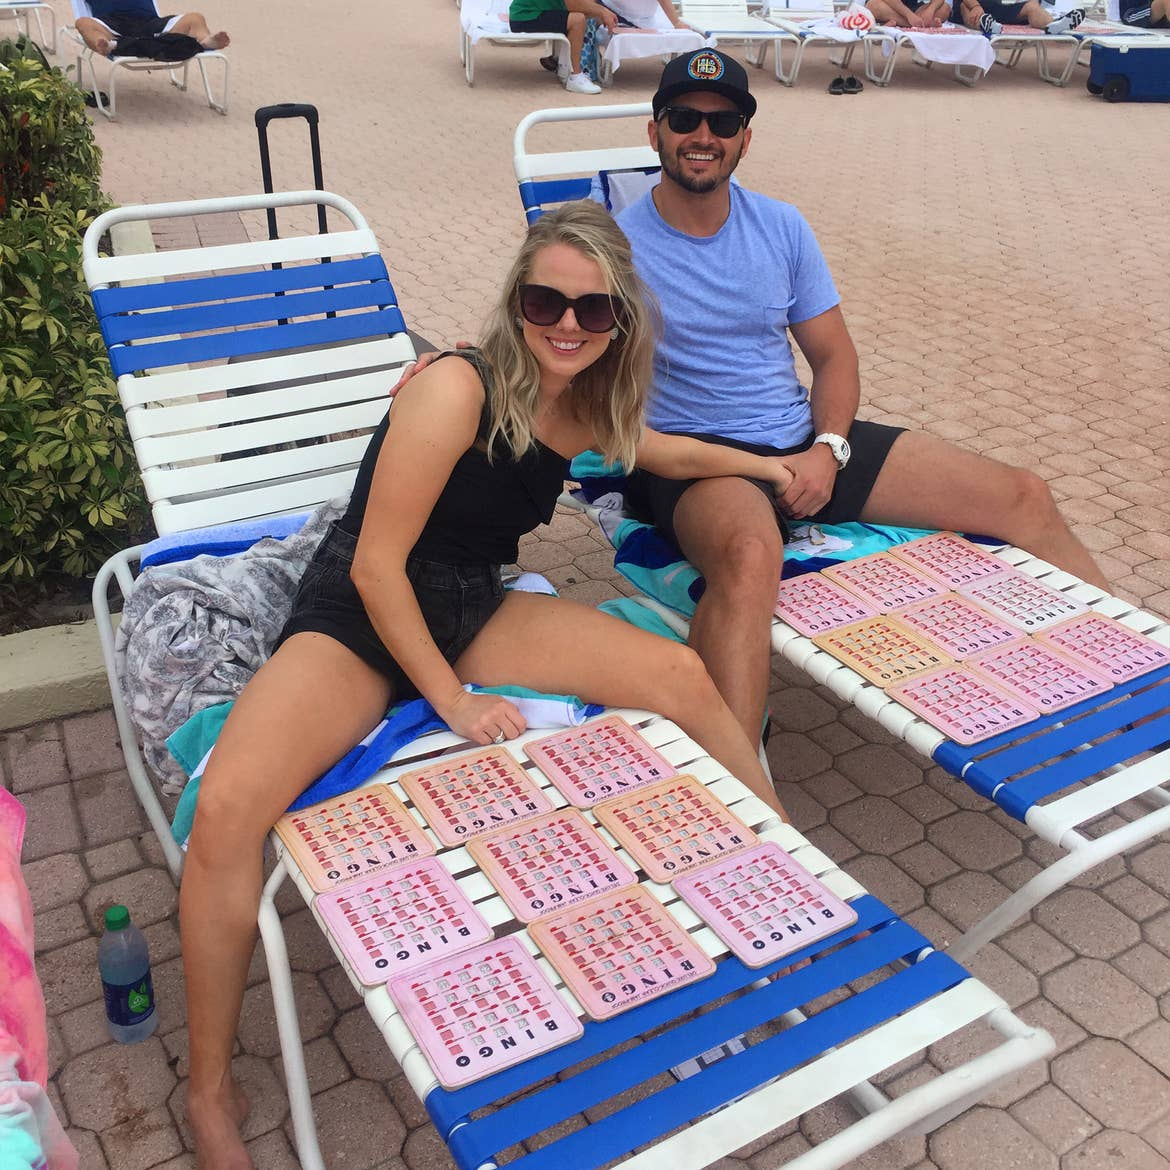 A caucasian woman wearing a black blouse and shorts (left) and Latinx male wearing a blue t-shirt, black shorts and a black hat (right) sit on two lounge chairs with numerous Bingo cards.